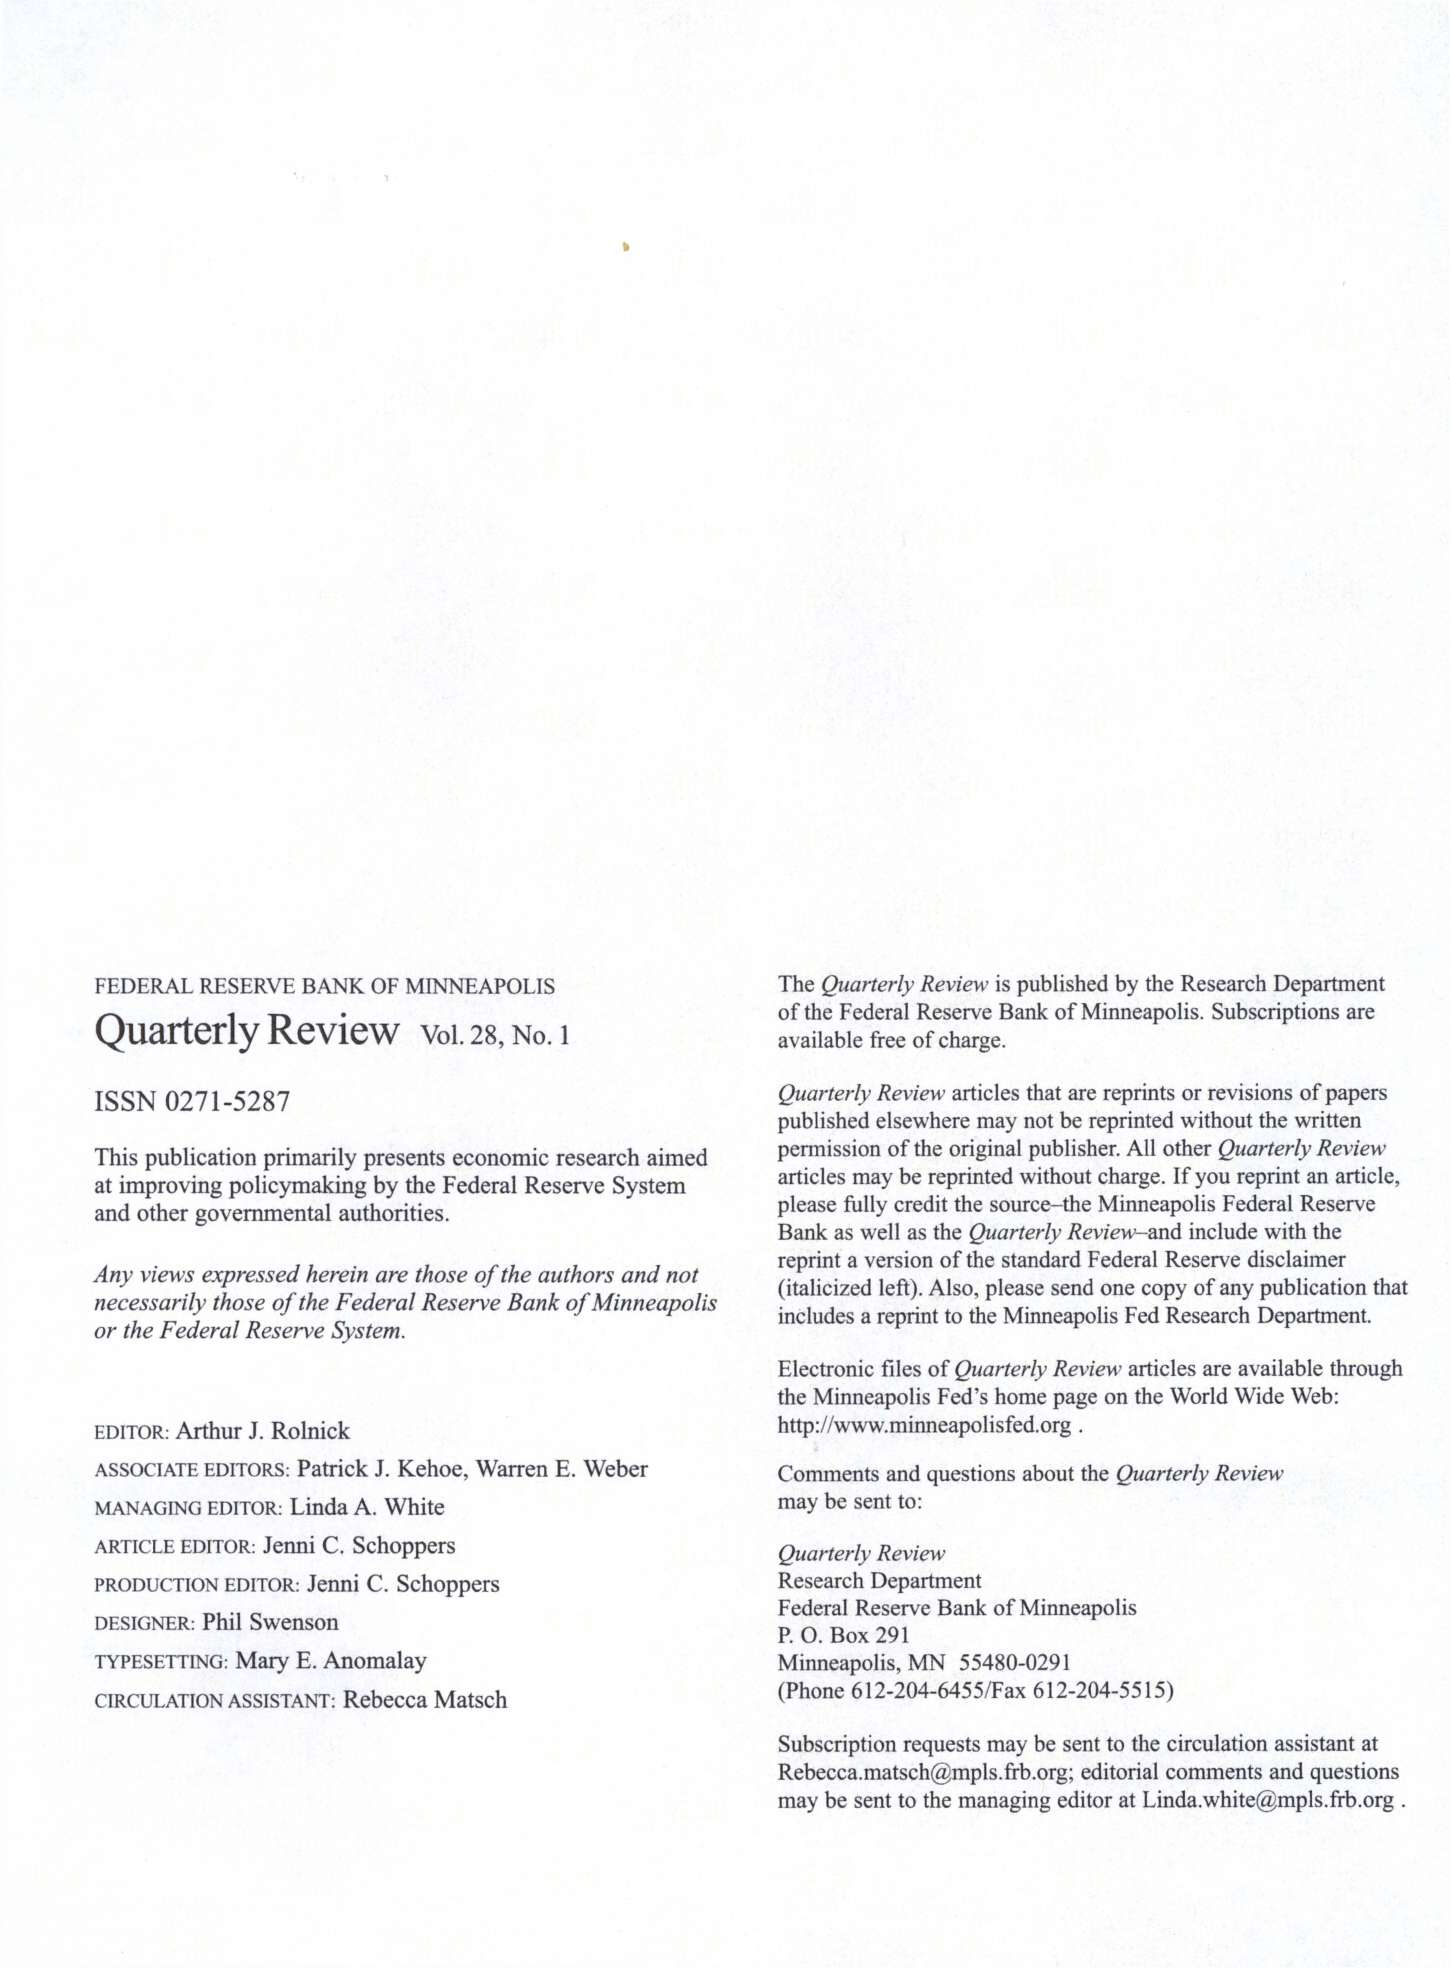 Quarterly Review vol. 28,NO. I ISSN 0271-5287 This publication primarily presents economic research aimed at improving policymaking by the Federal Reserve System and other governmental authorities.